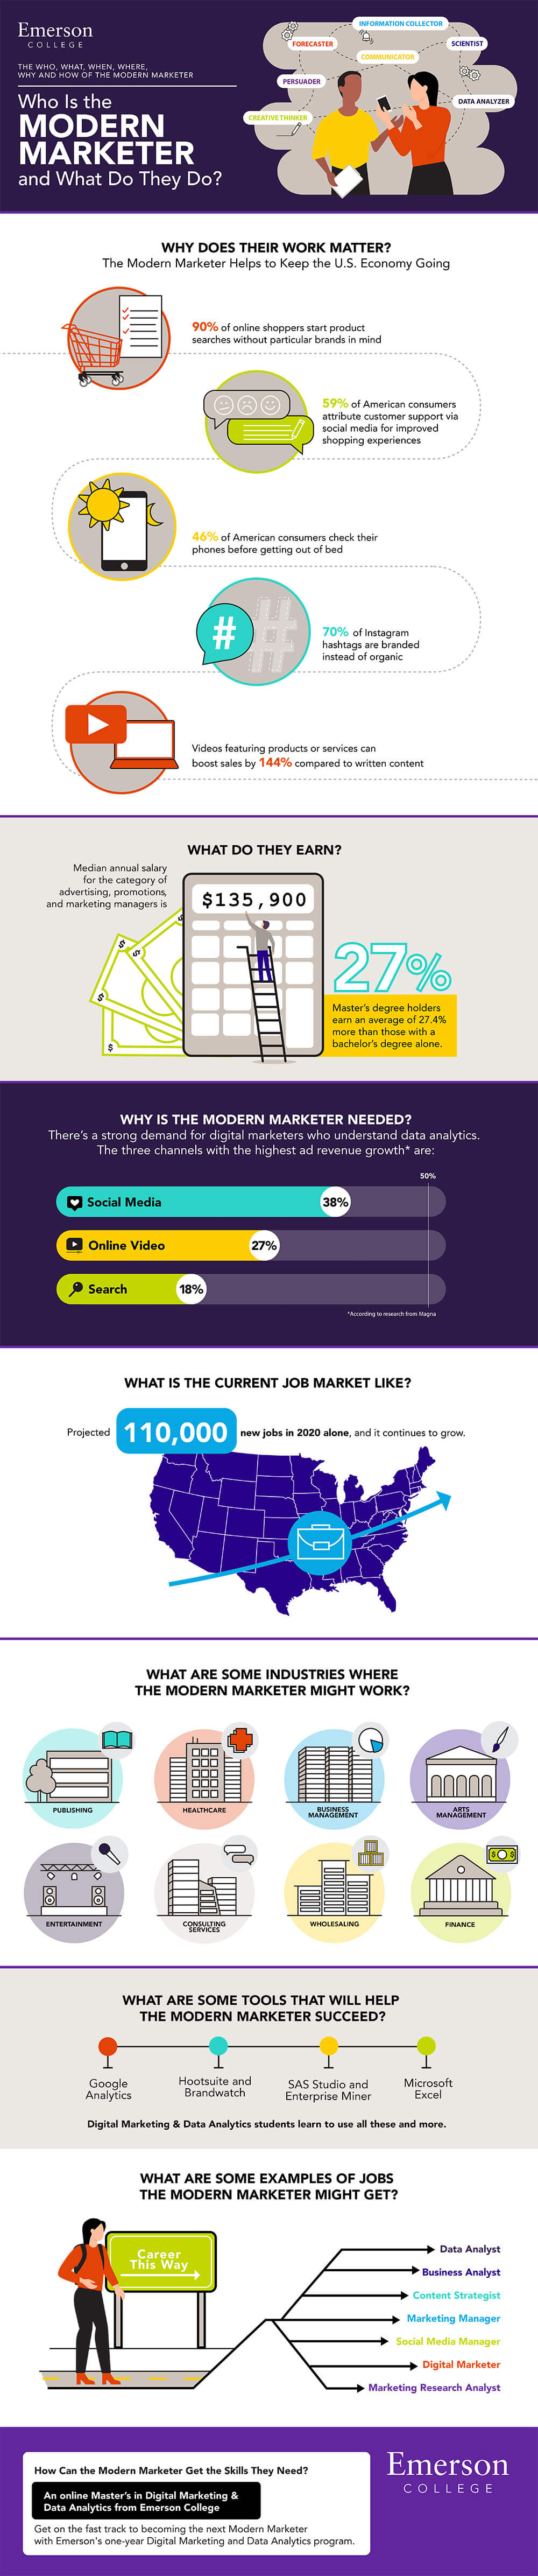 Who is the Modern Marketer? Online DMDA Program from Emerson College